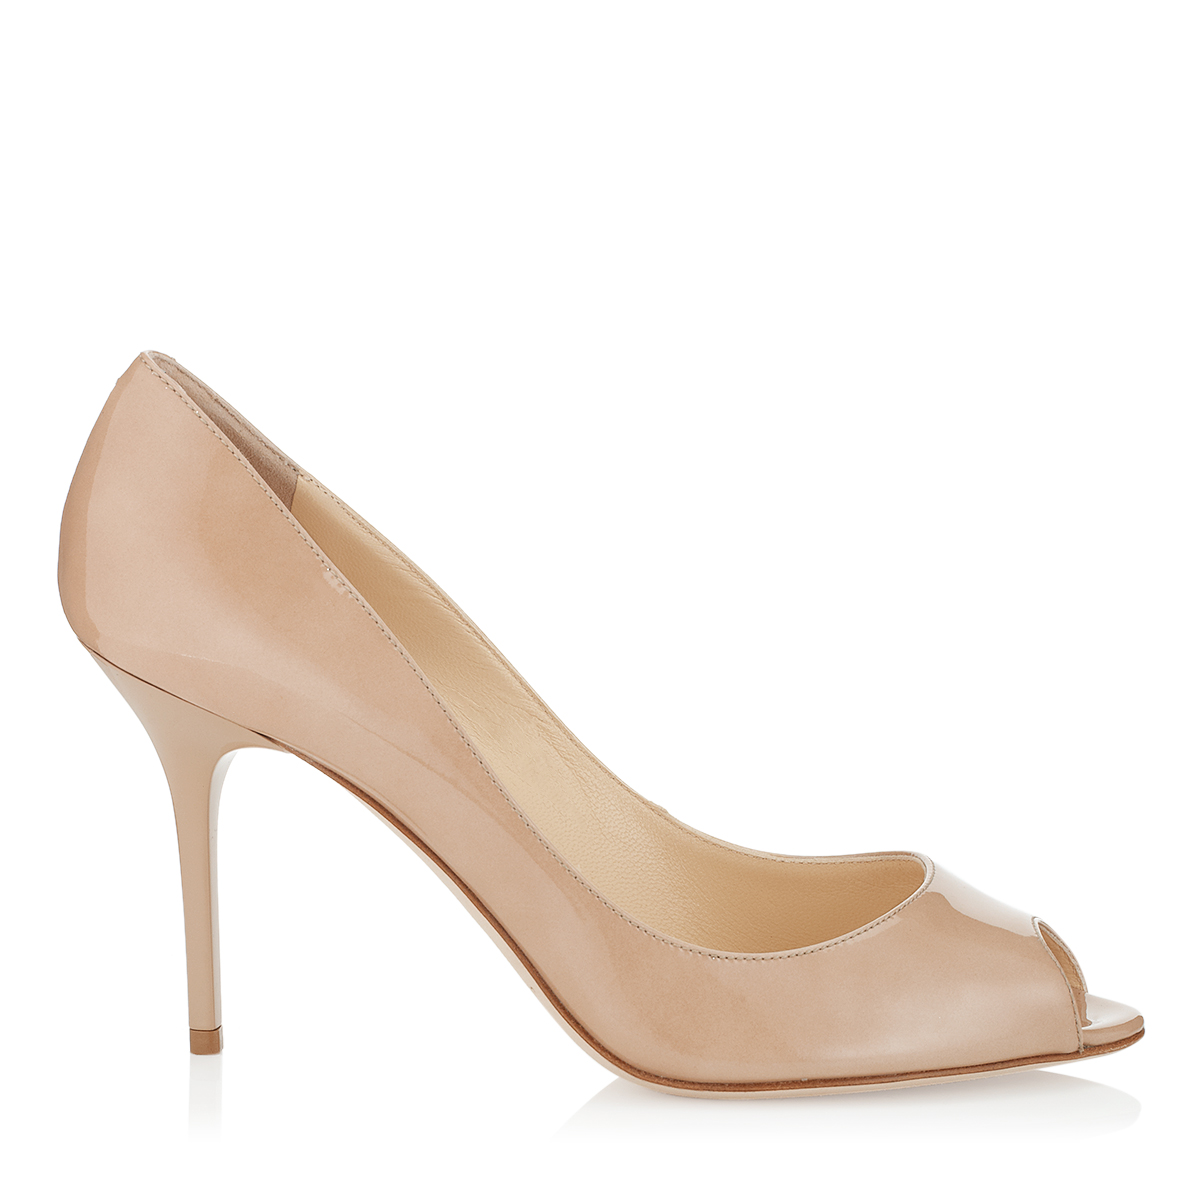 EVELYN Nude Patent Peep Toe Pumps